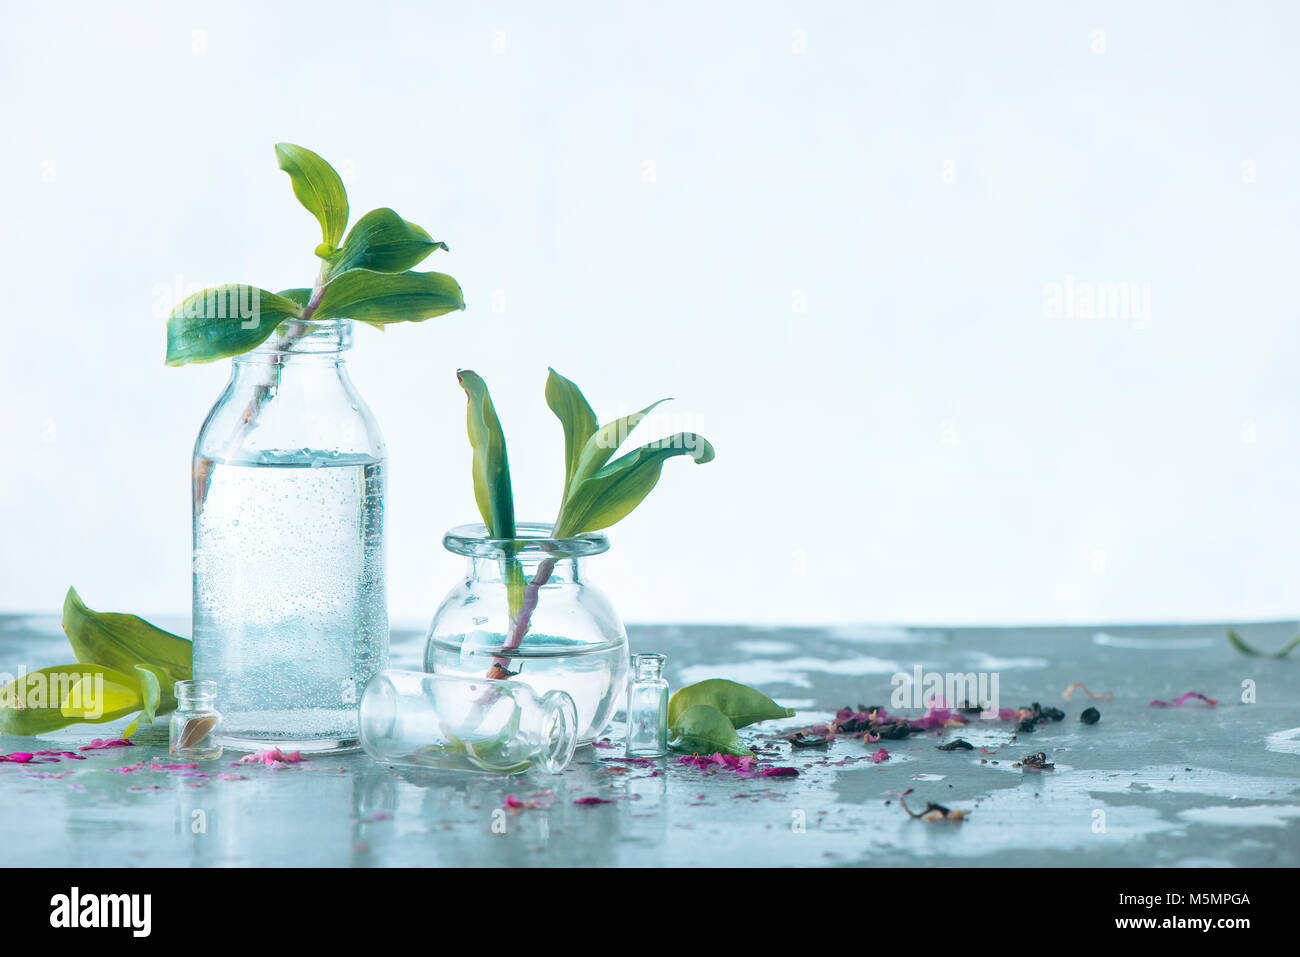 Two bottles with fresh green leaves on a concrete background. Spring concept with copy space. Minimalist still life - Stock Image